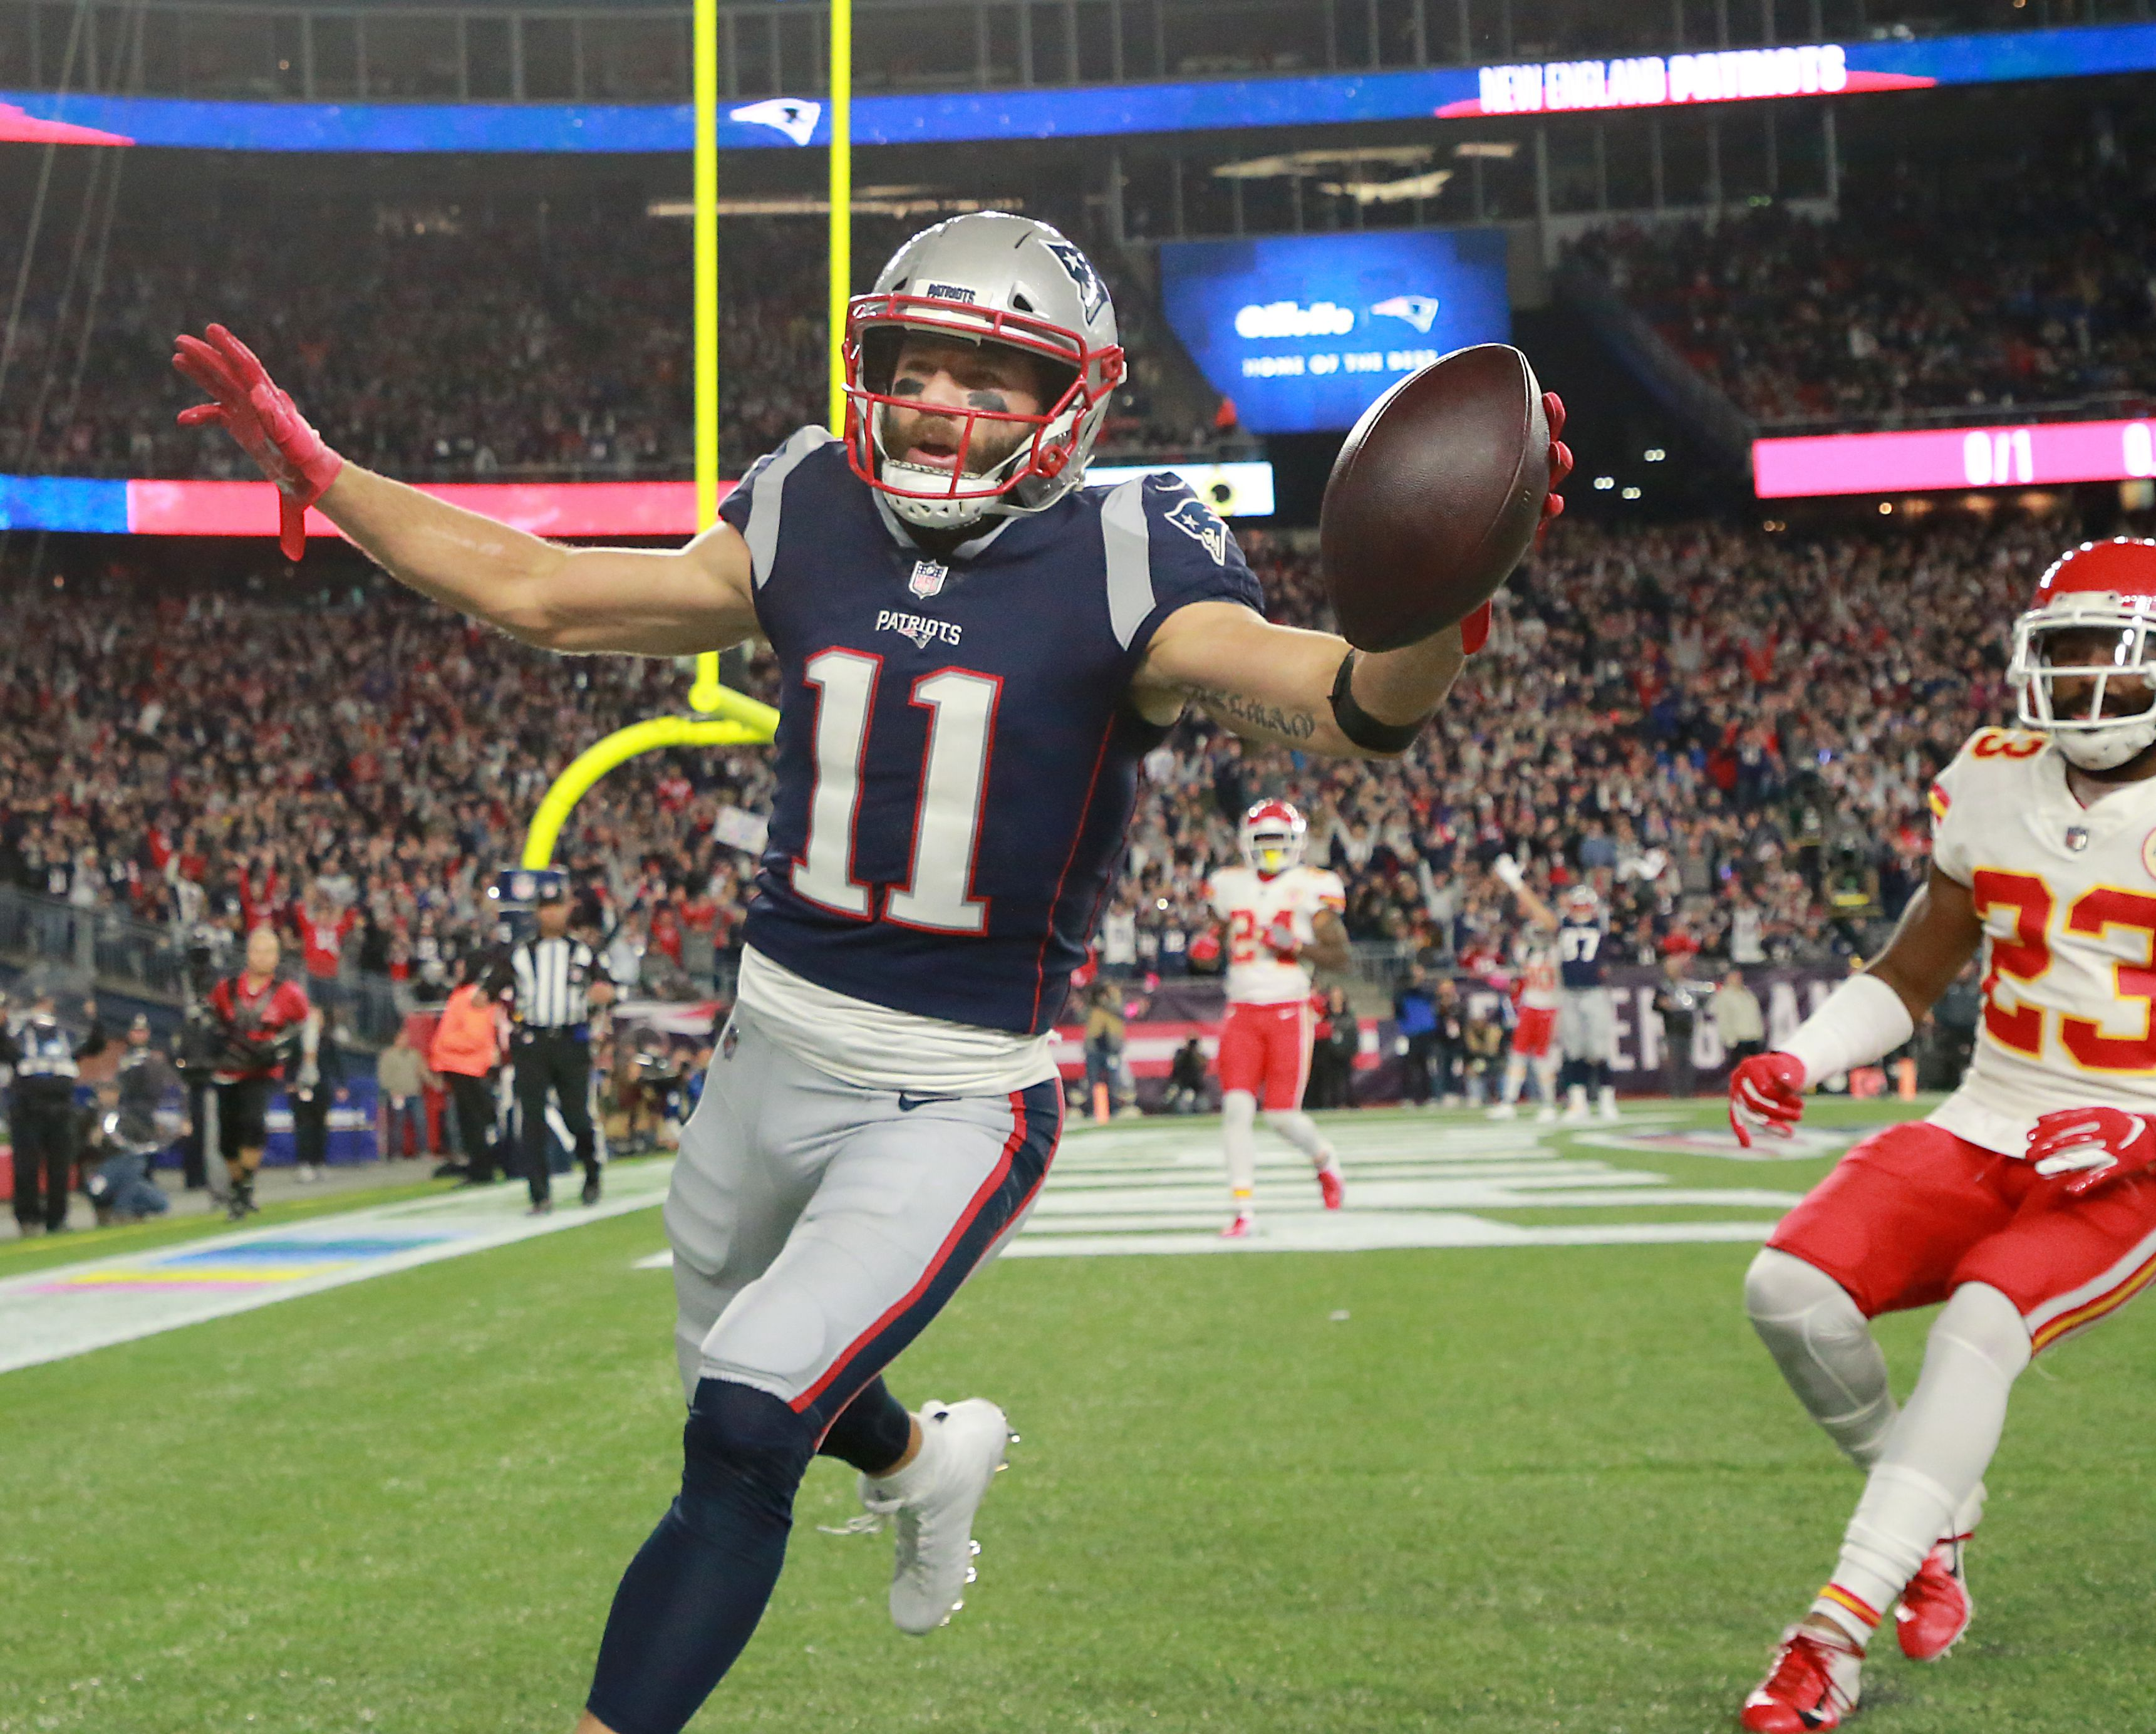 The Chiefs left too much time, and Tom Brady did what Tom